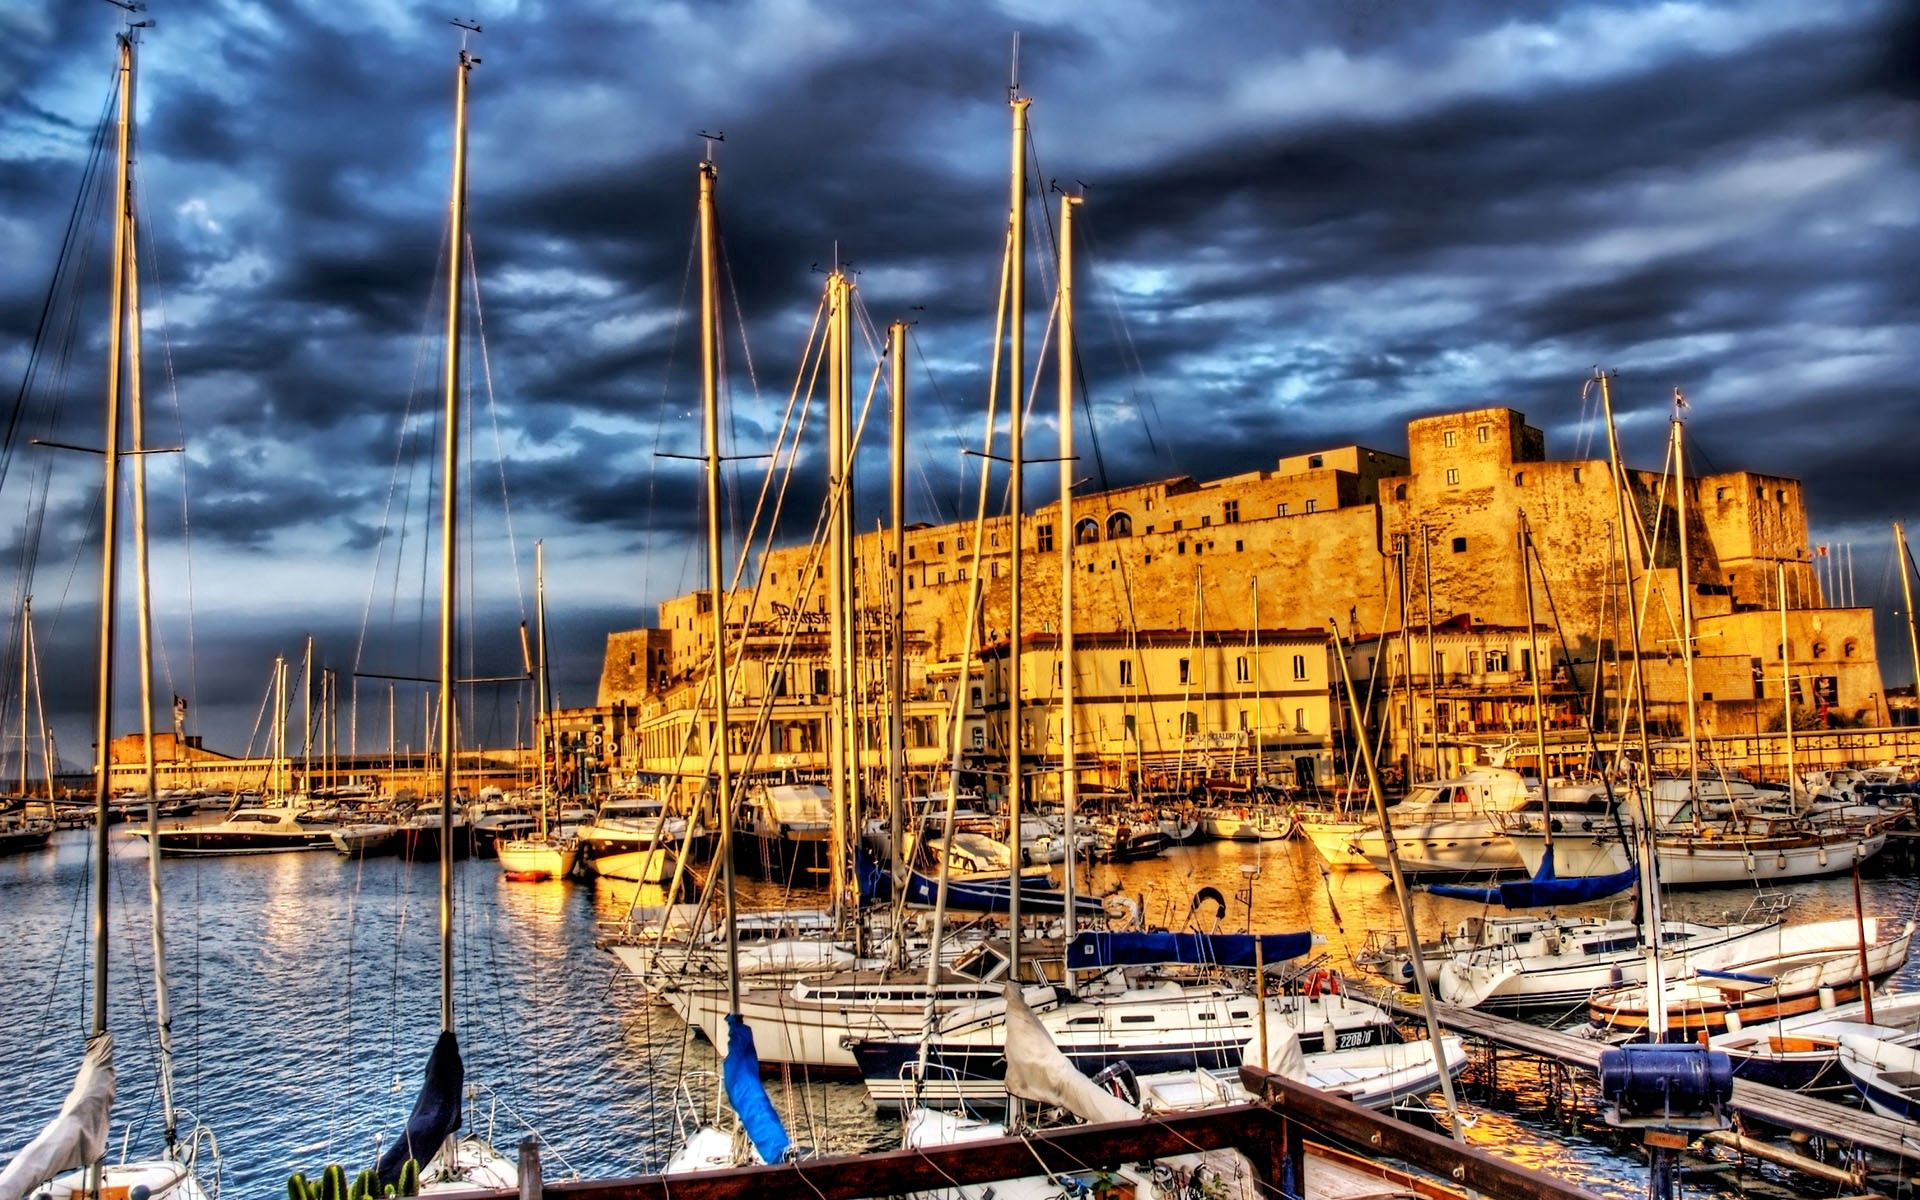 56485 download wallpaper Berth, Wharf, Rivers, Ships, Boats, Hdr, Cities screensavers and pictures for free